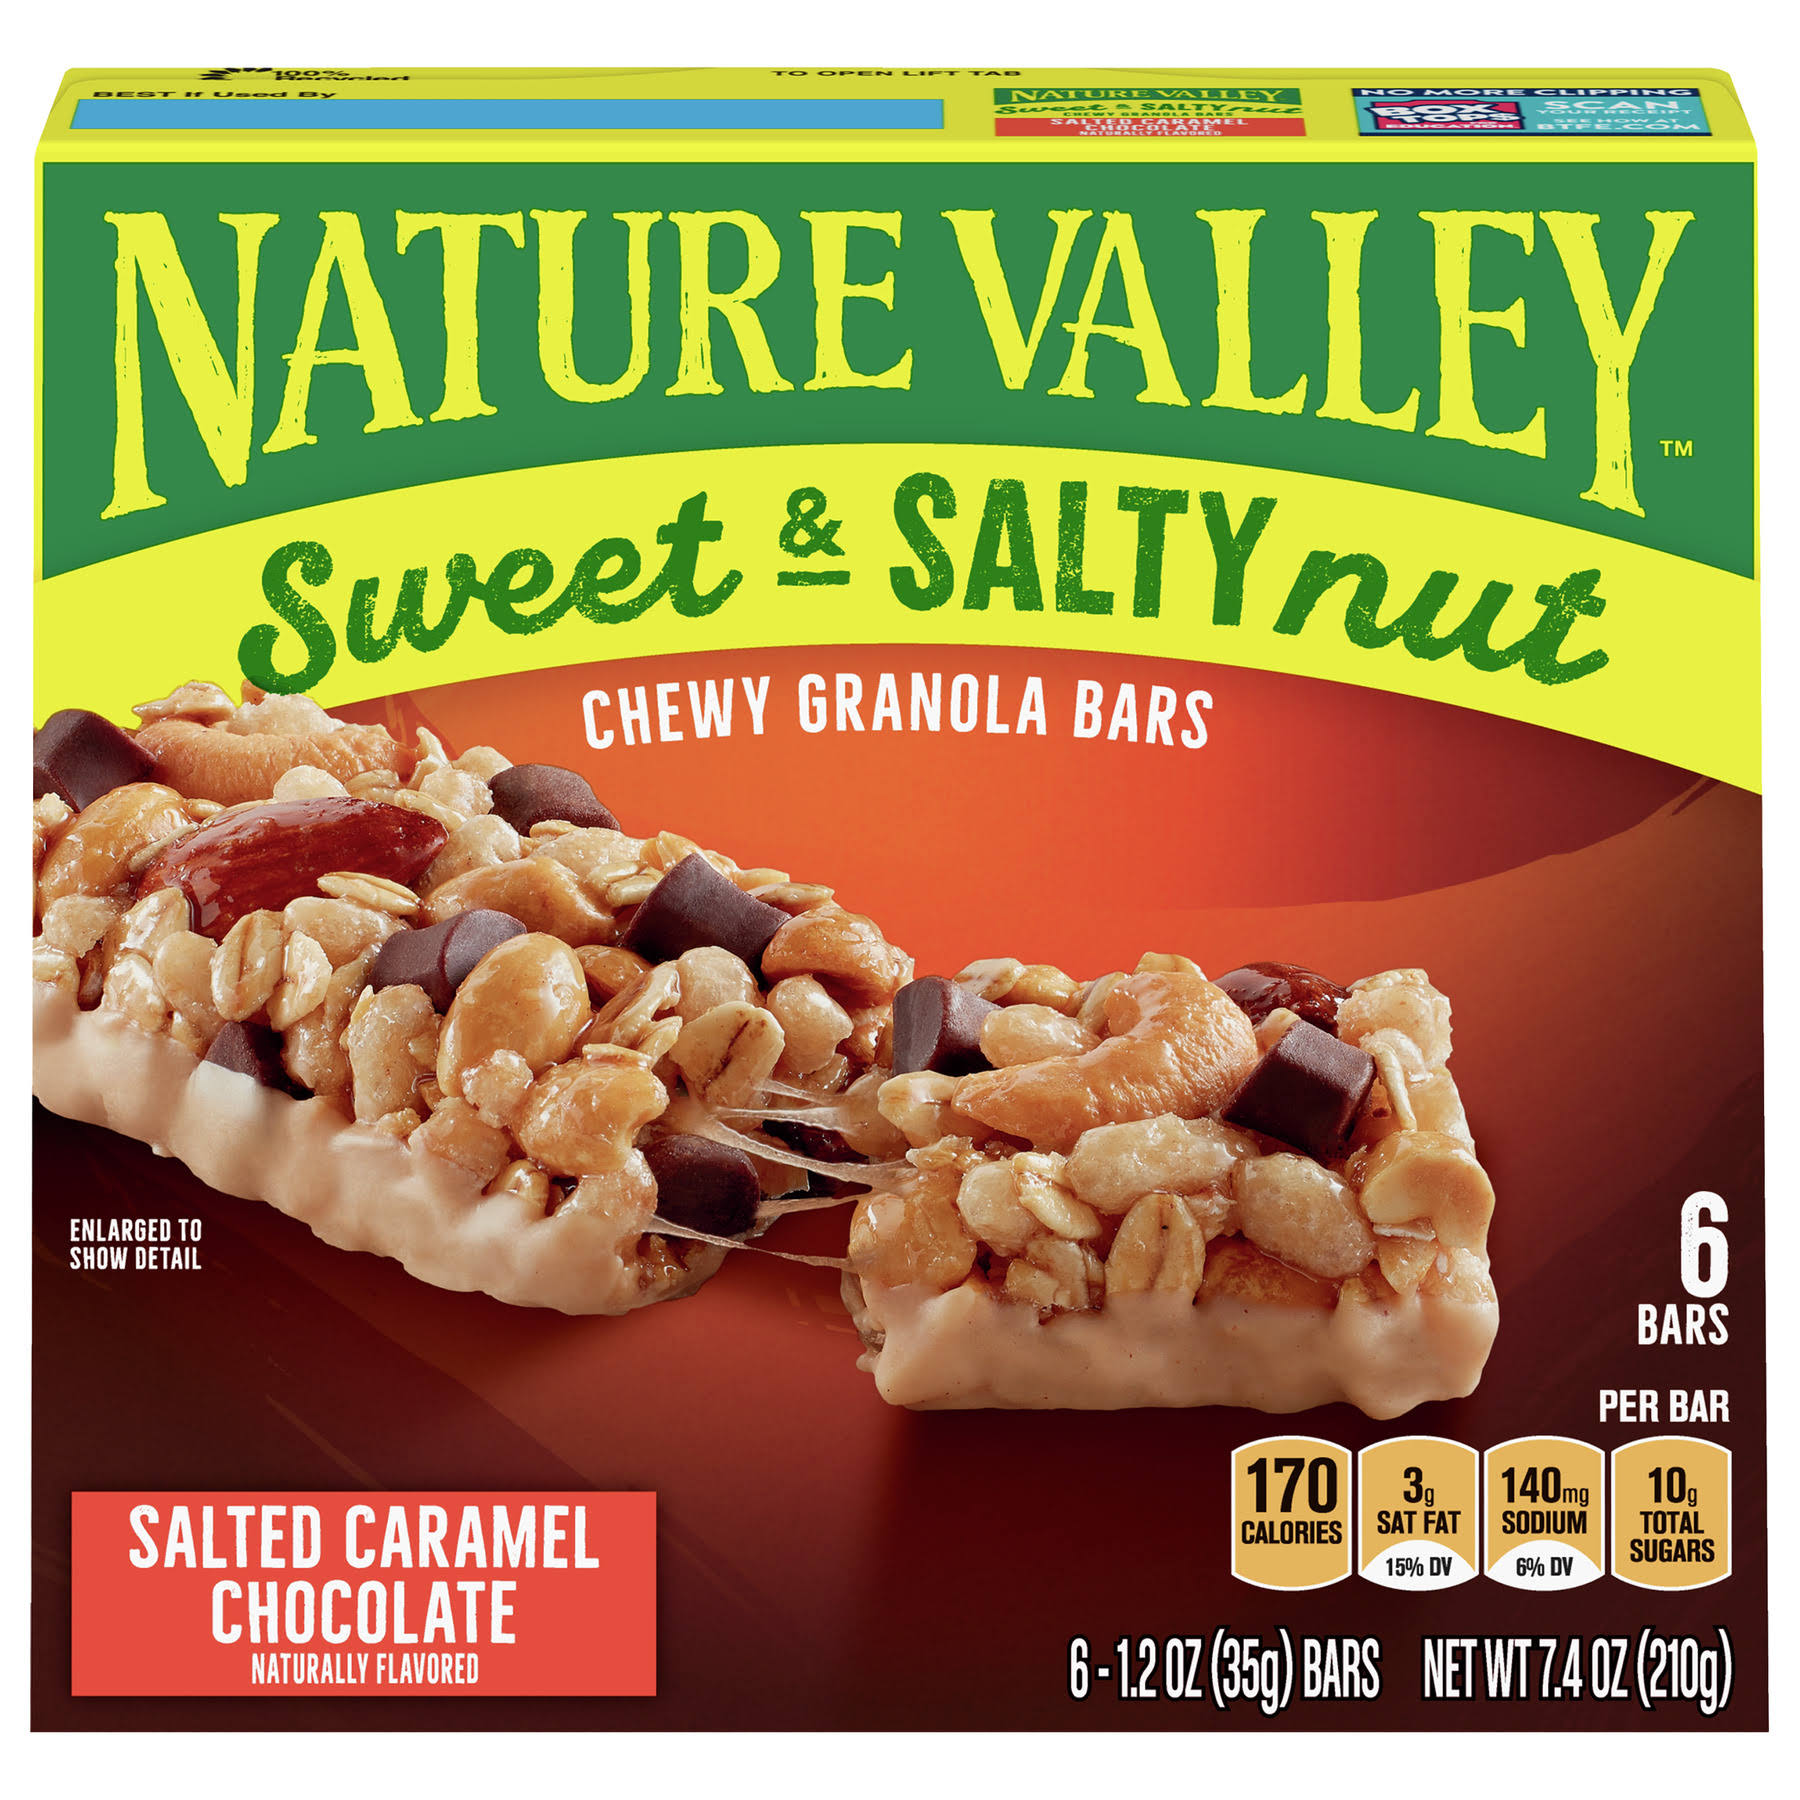 Nature Valley Granola Bars, Sweet & Salty Nut - 6 pack, 1.24 oz bars